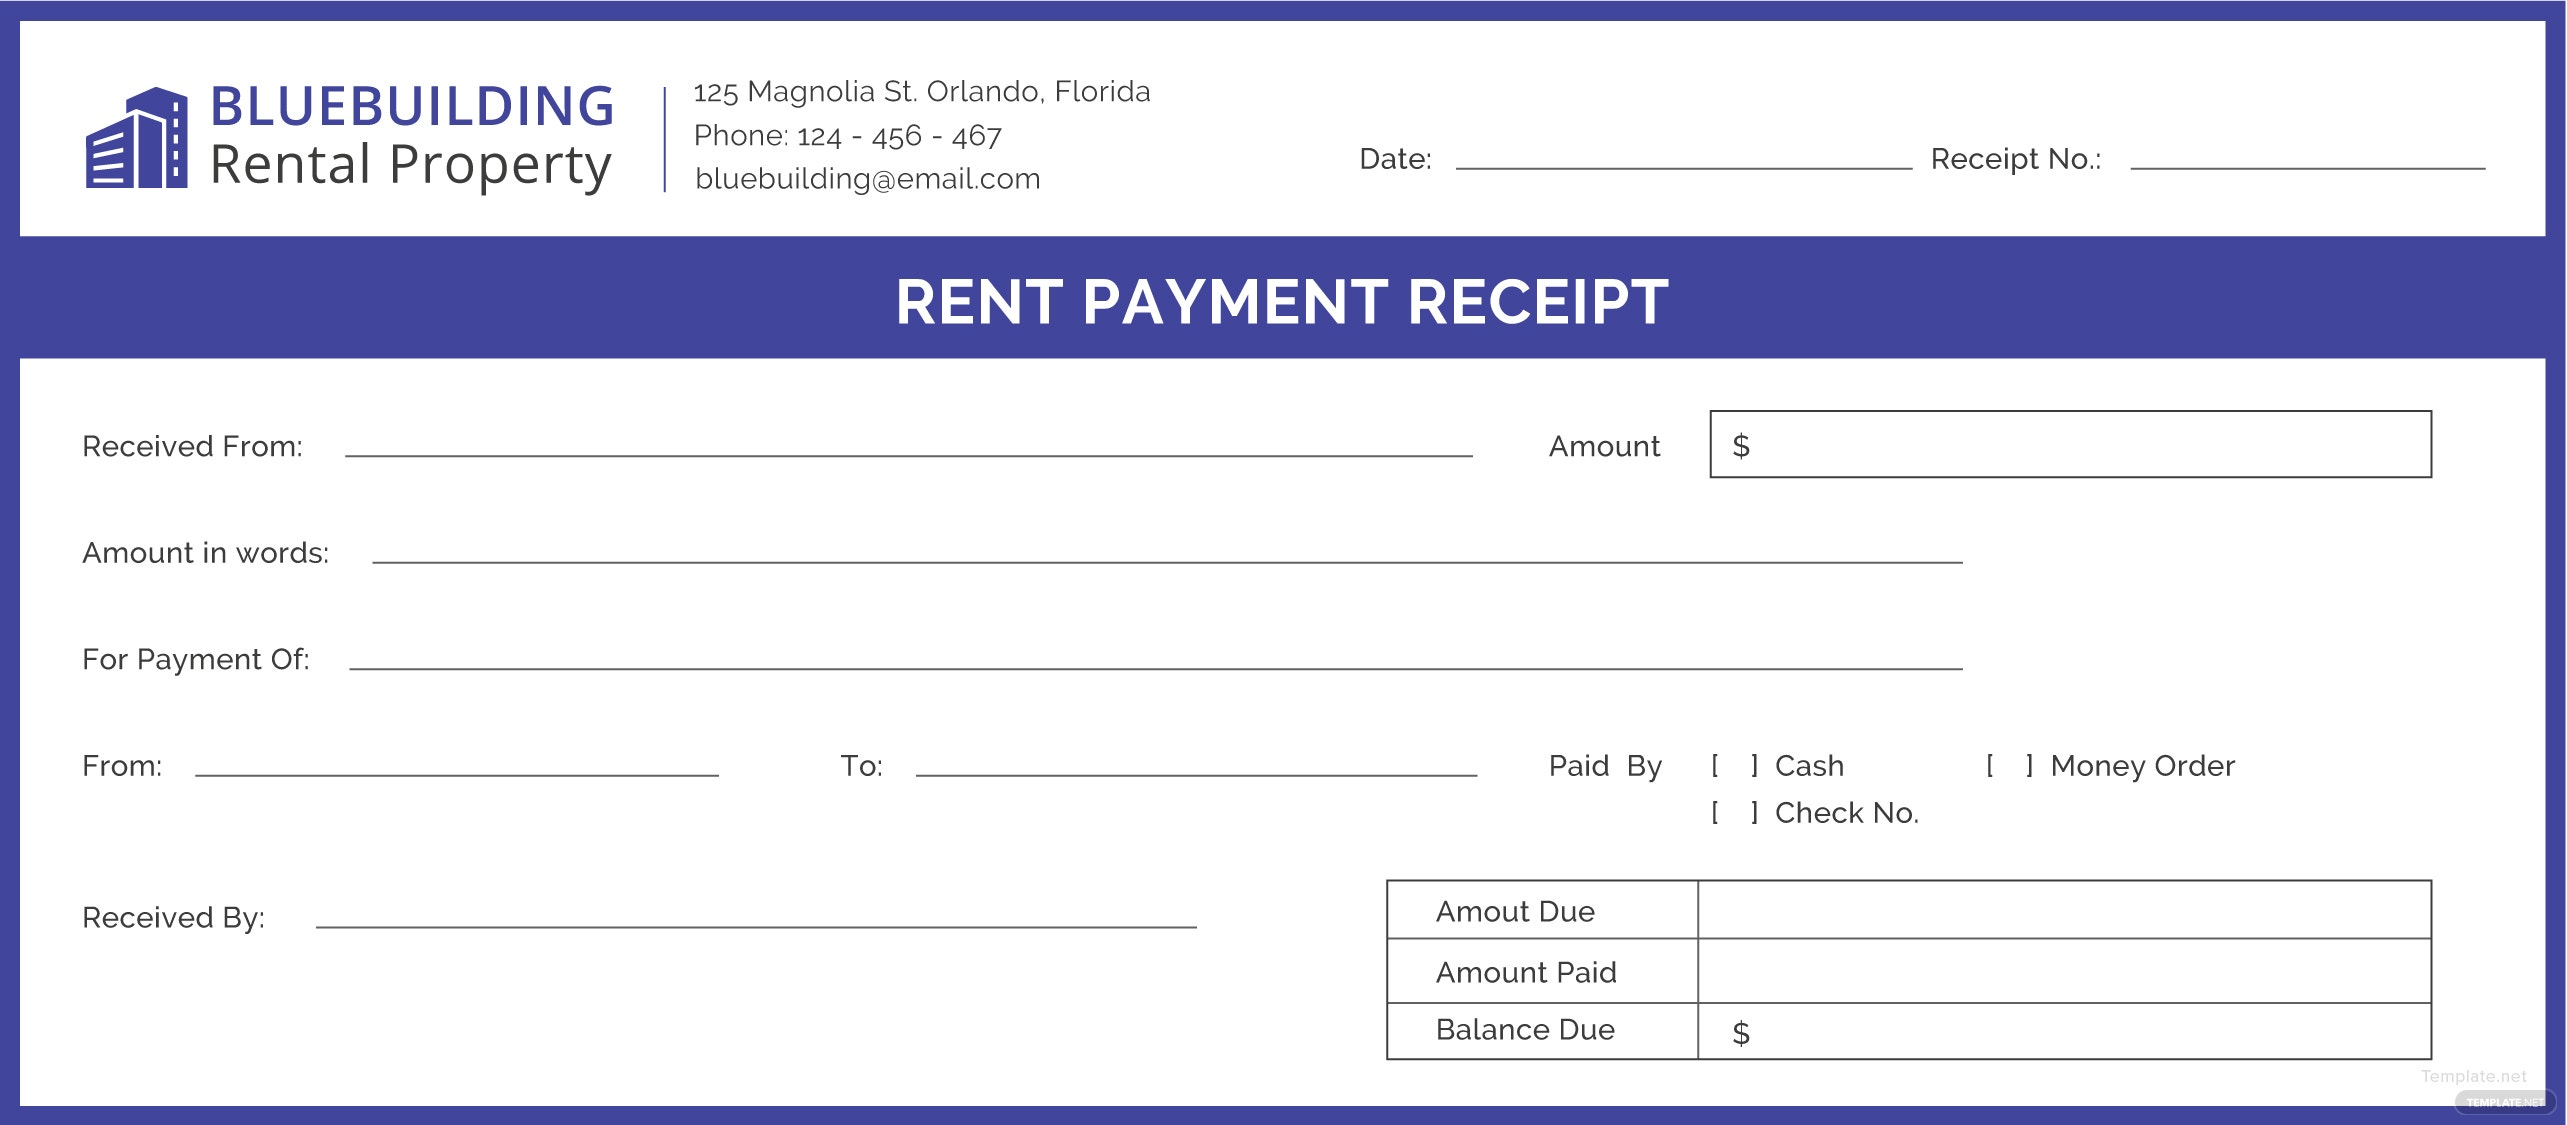 Rent Payment Receipt Demirediffusion